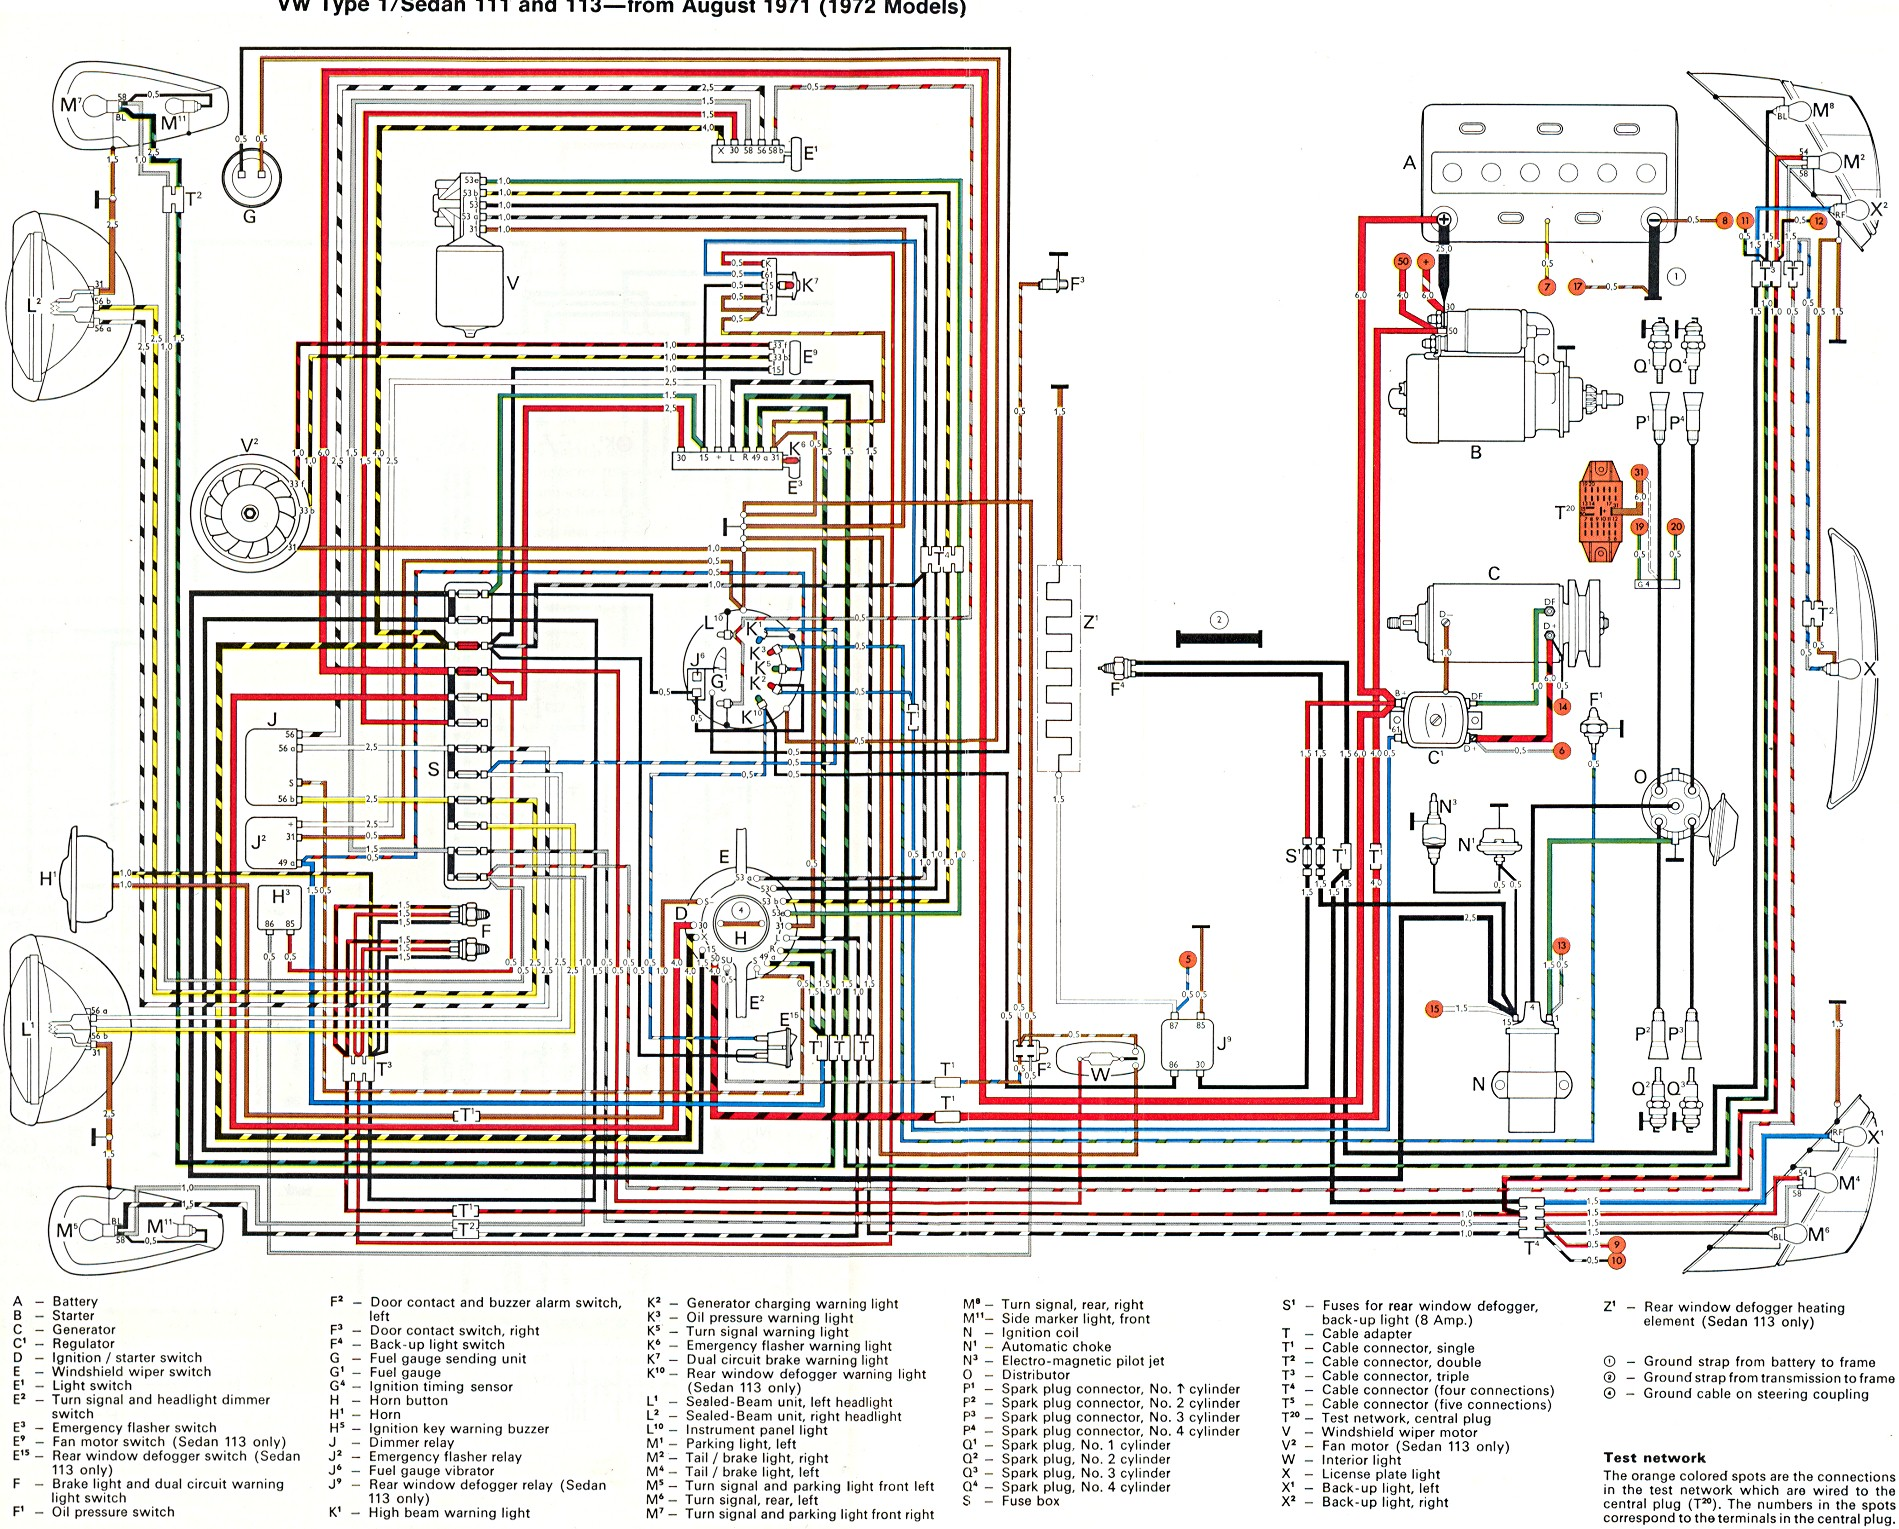 72 Vw Fuse Box Auto Electrical Wiring Diagram 1968 Beetle Charging System Super Get Free Image